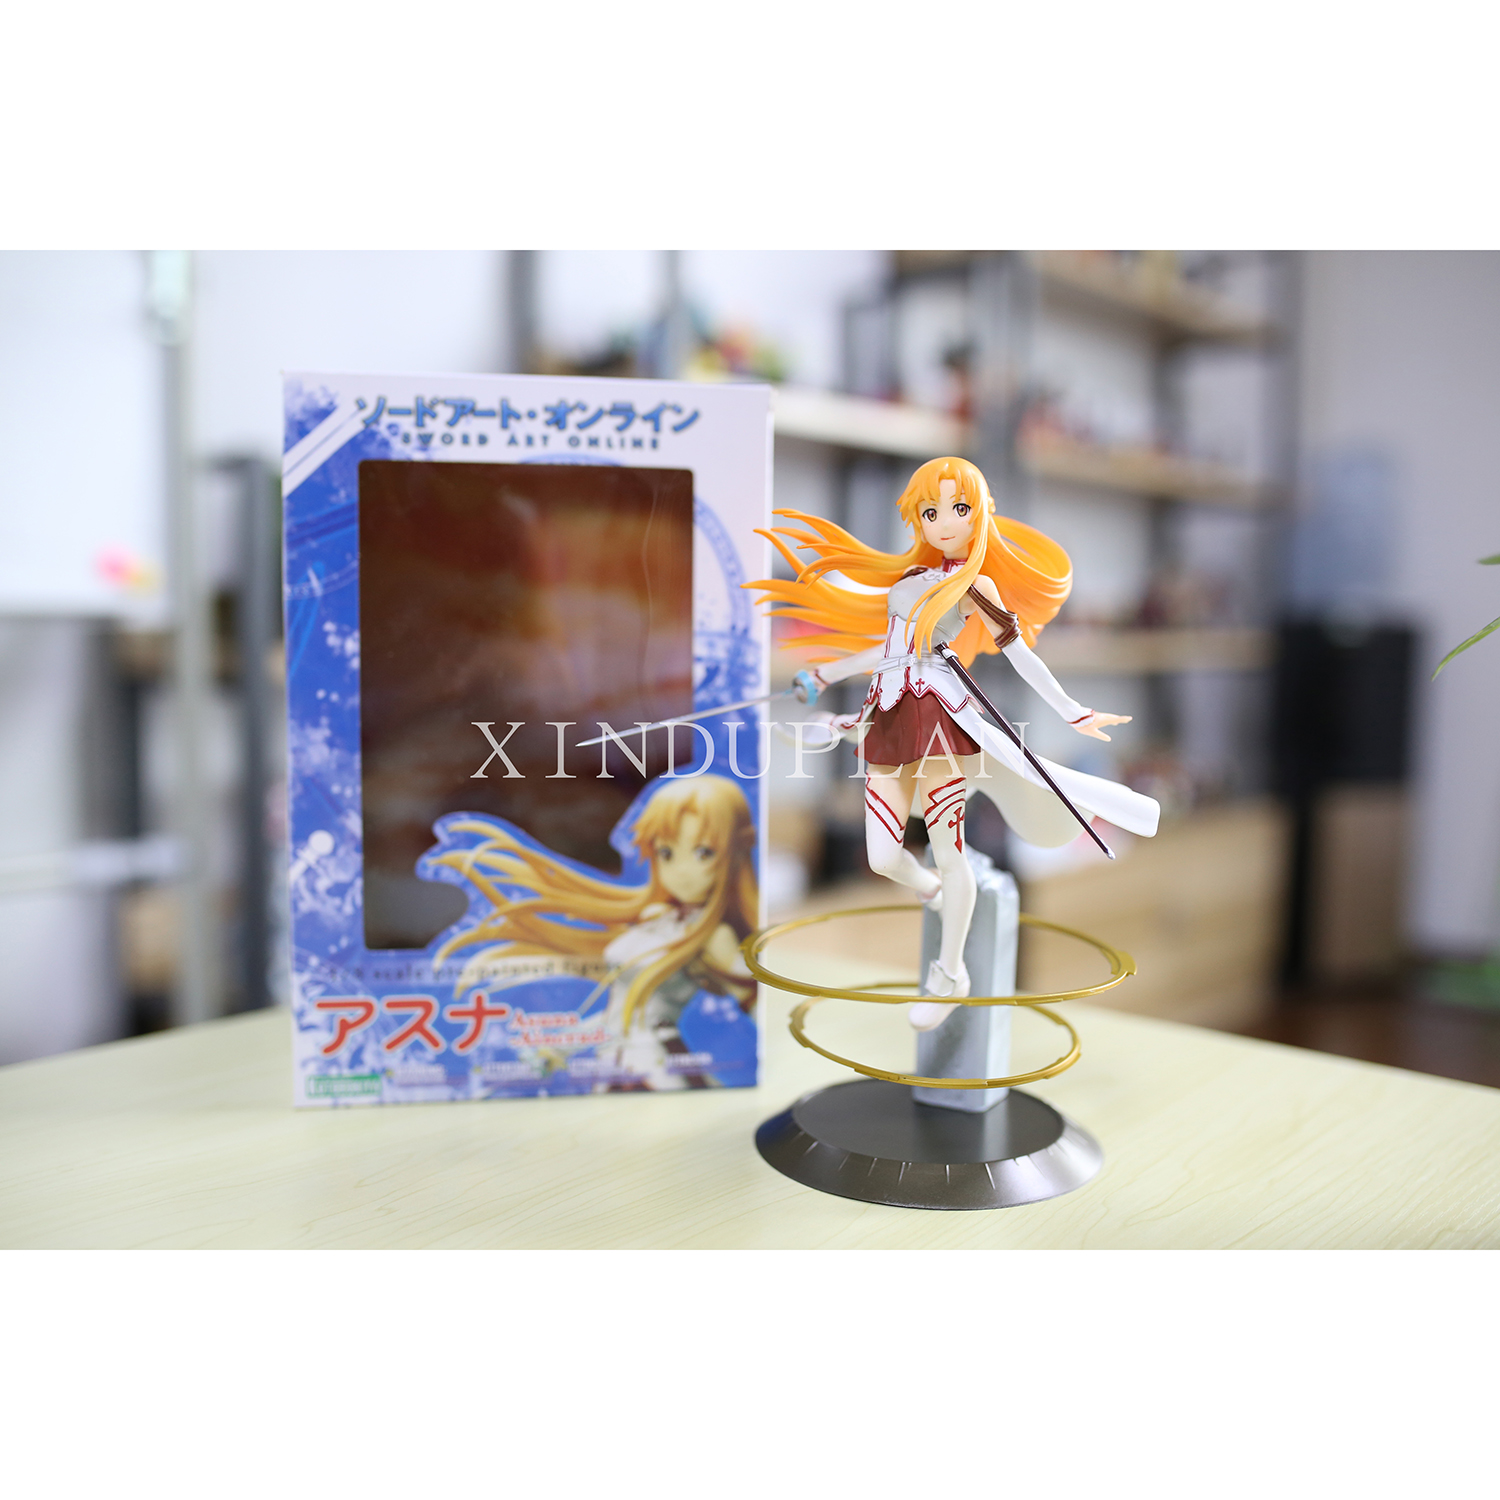 XINDUPLAN Sword Art online Anime Kirito Yuuki Asuna SAO Action Figure Toys 23cm PVC Gifts Collection Model 0467 nendoroid anime sword art online ii sao asada shino q version pvc action figure collection model toy christmas gifts 10cm